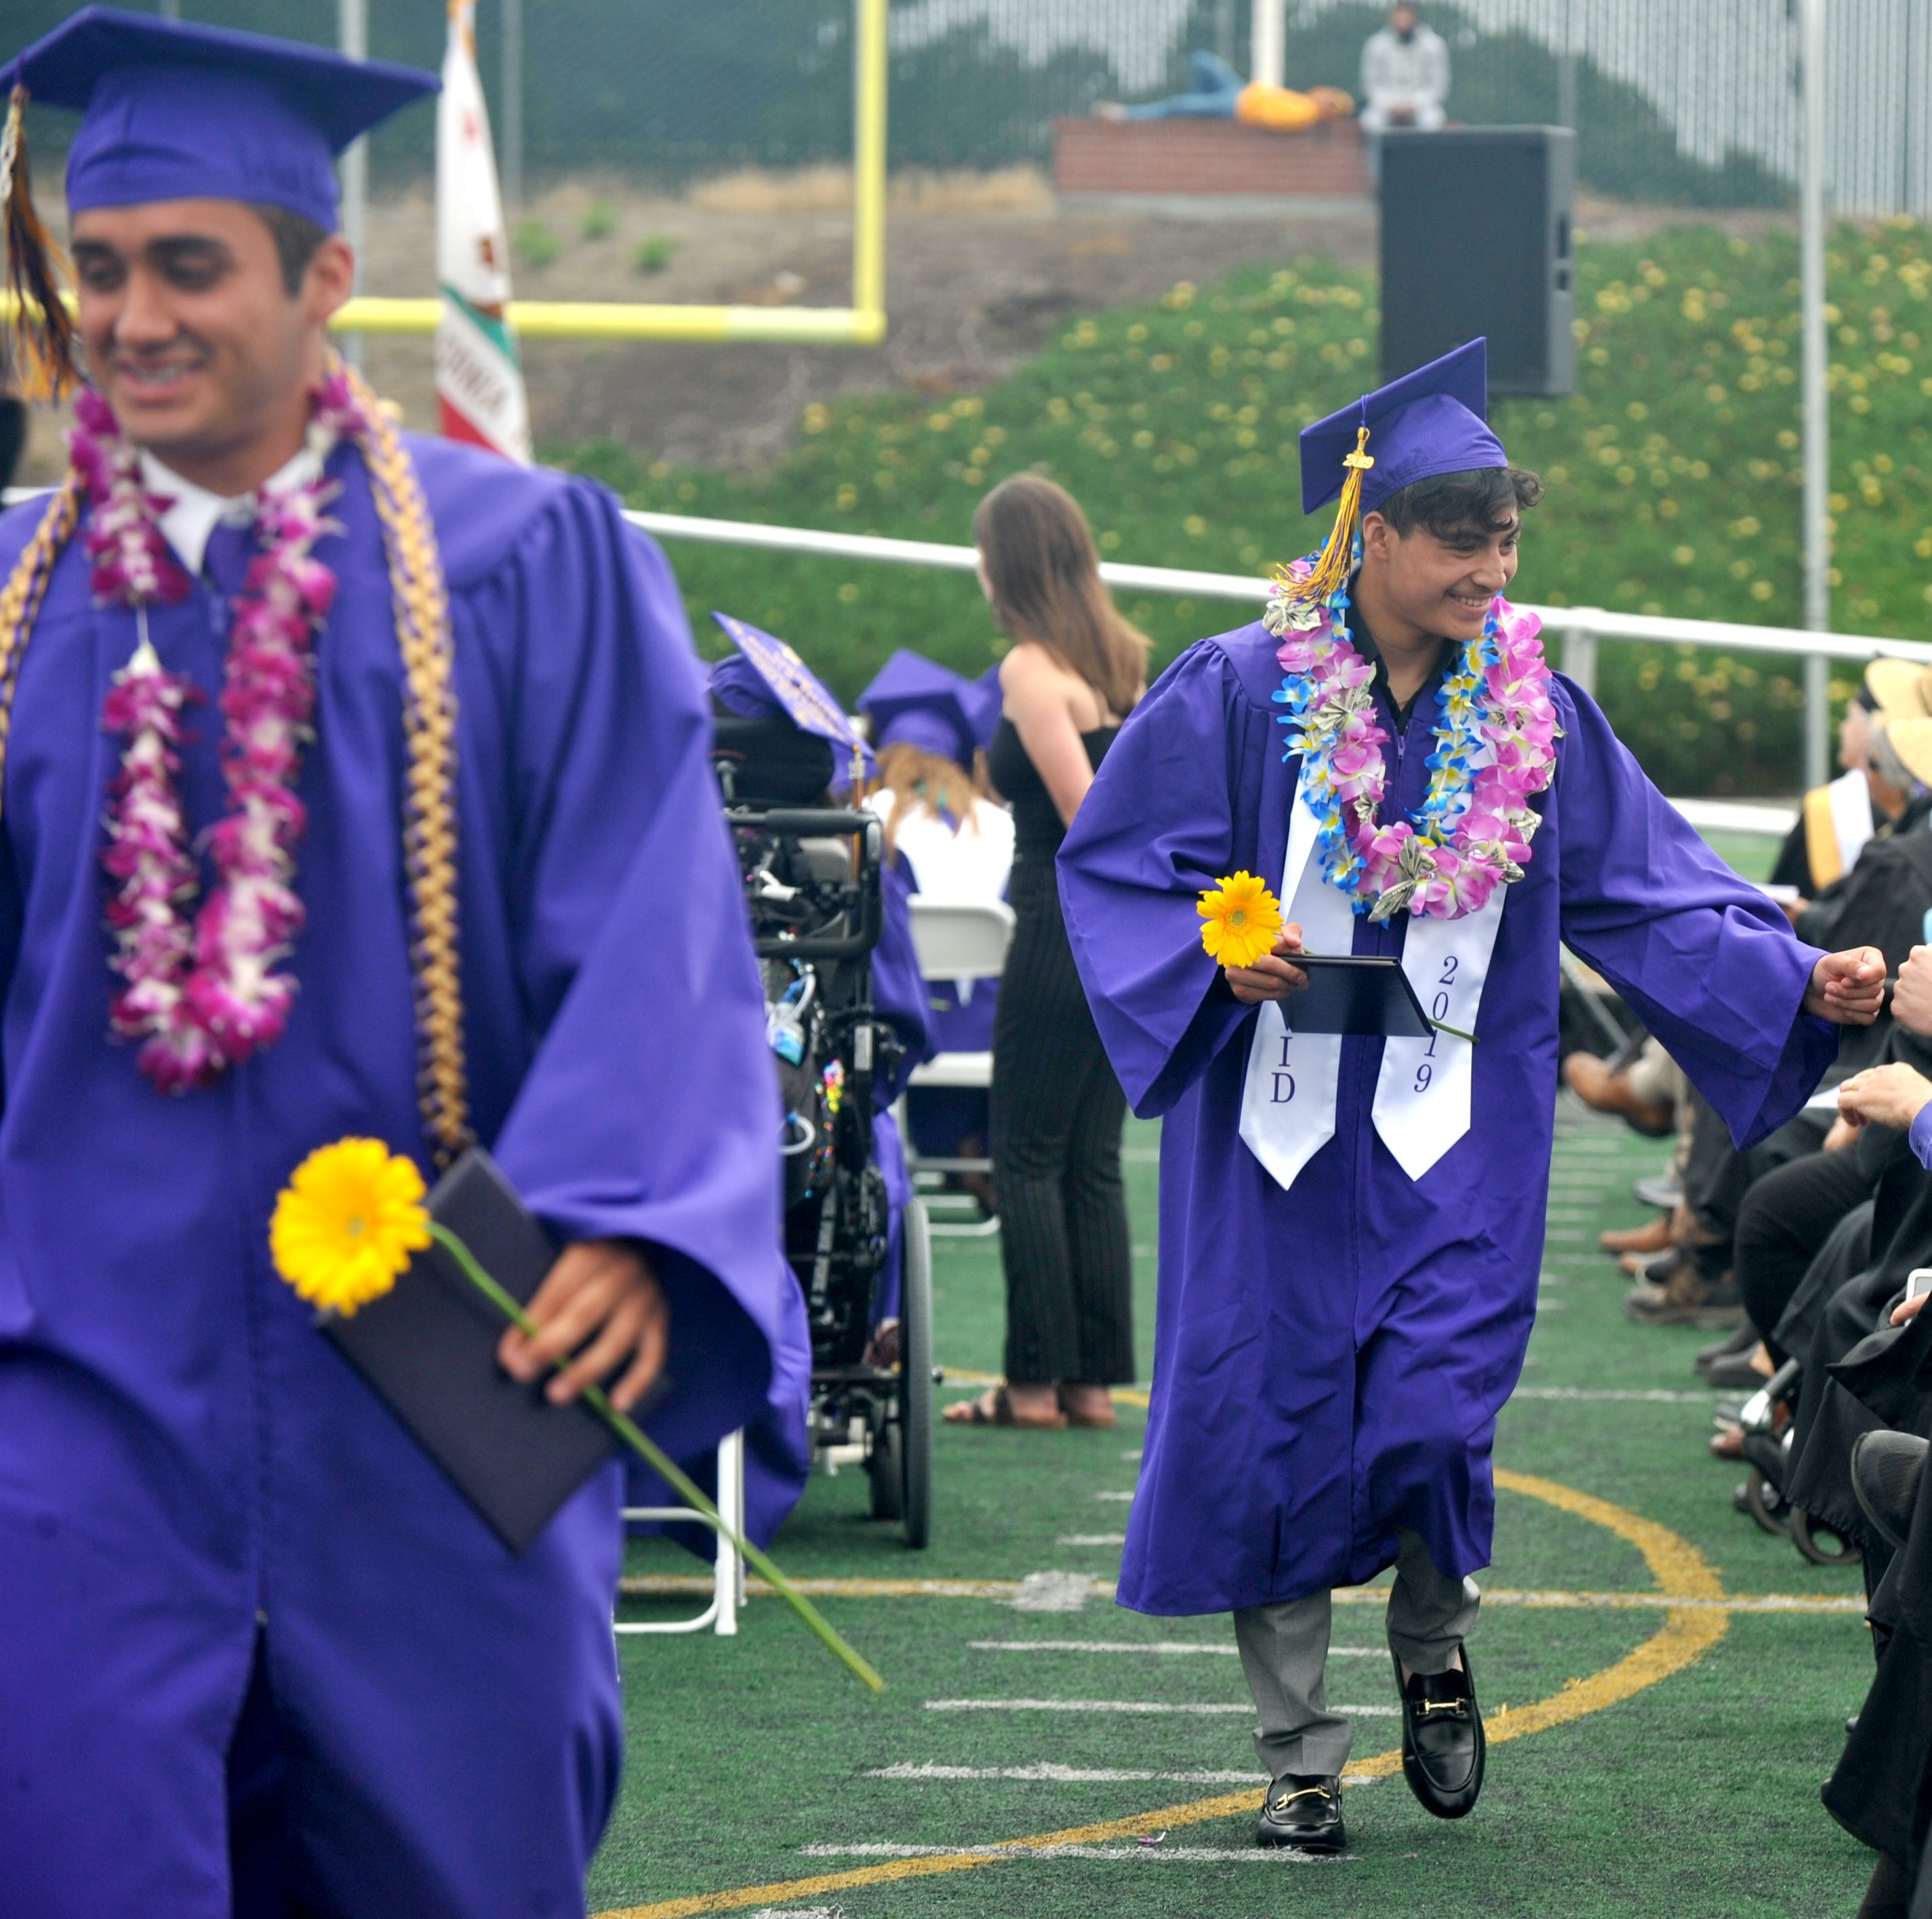 A century after Steinbeck, students across Salinas receive their high school diplomas